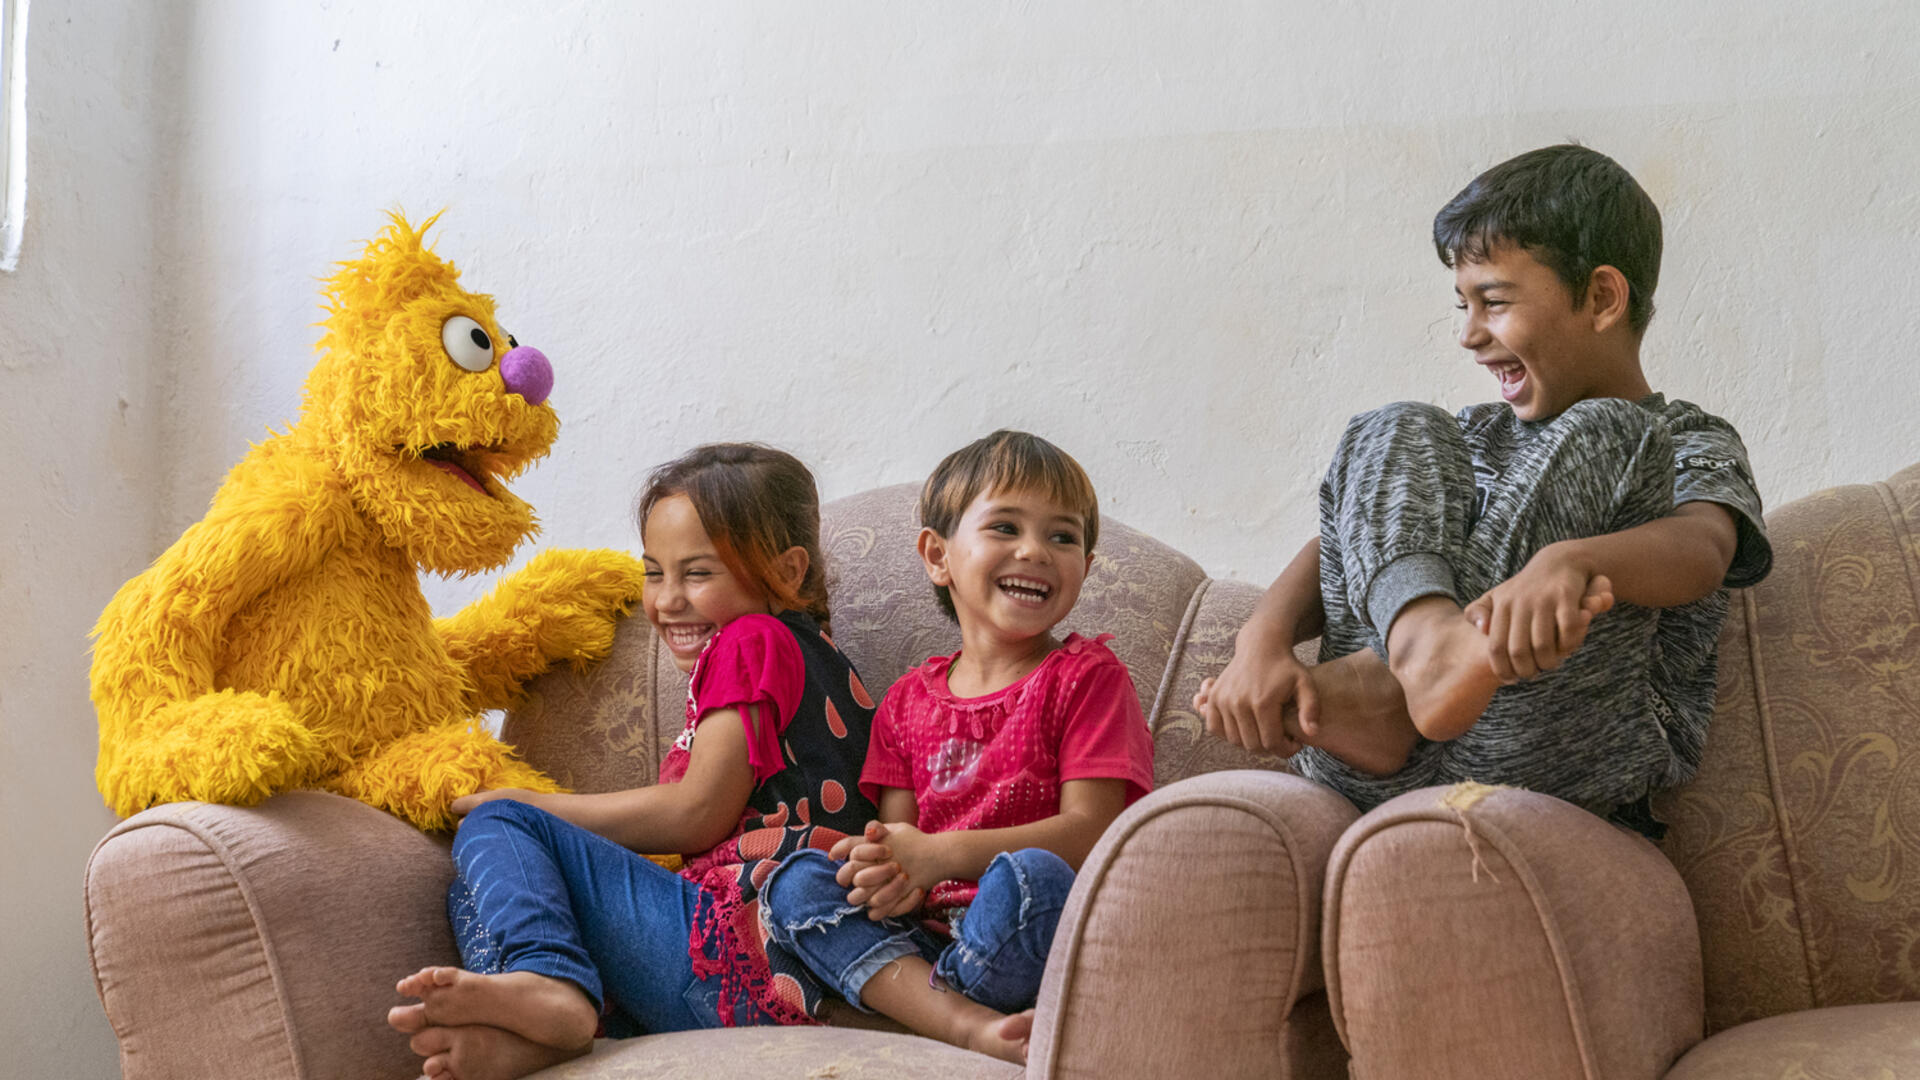 'Ahlan Simsim' features new characters with stories and experiences refugee children can relate to, like Jad, a young Muppet who had to leave his home. Jad loves to express himself through art.